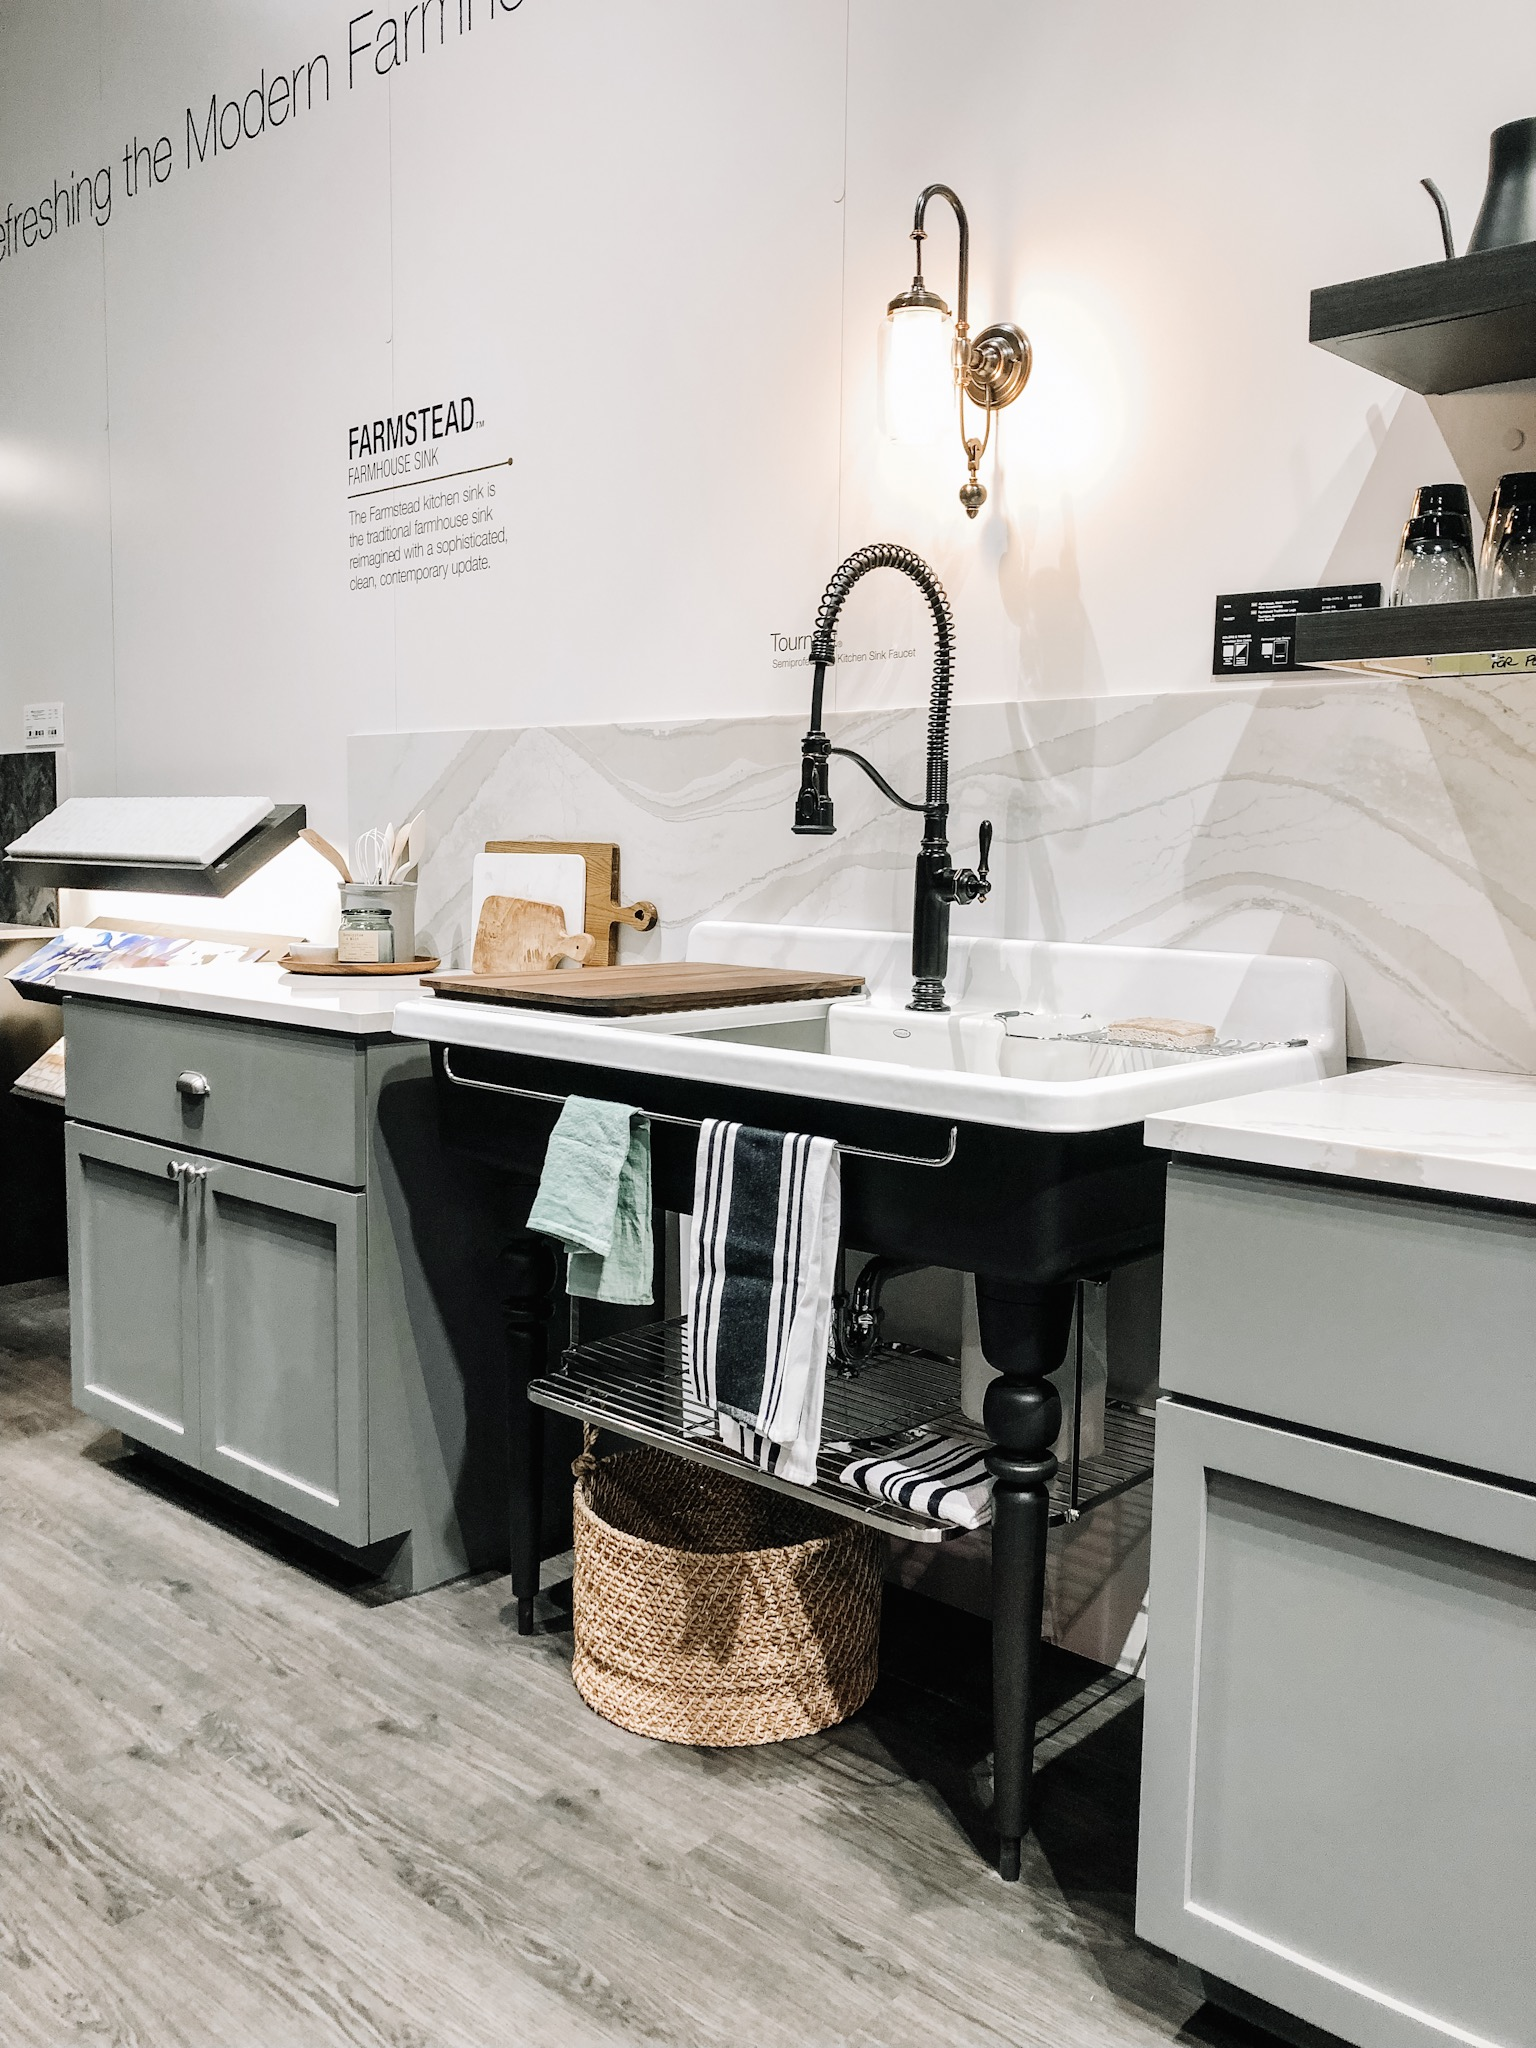 The Top 5 Kitchen and Bath Trends for 2019 - And How To Get Them On a Budget